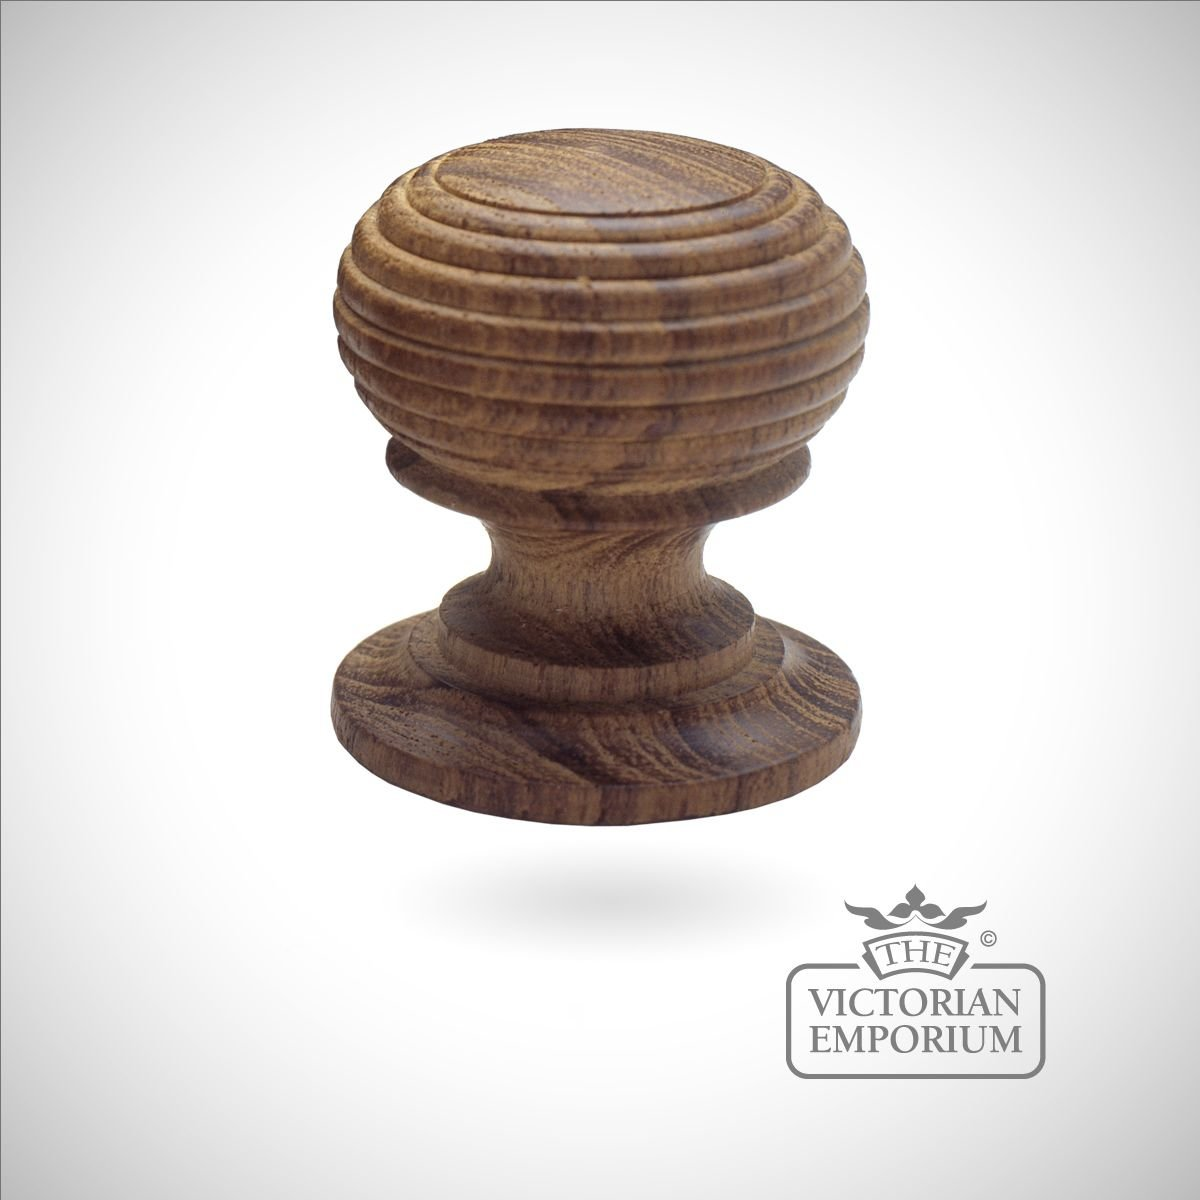 Large wooden cabinet knob beehive knobs